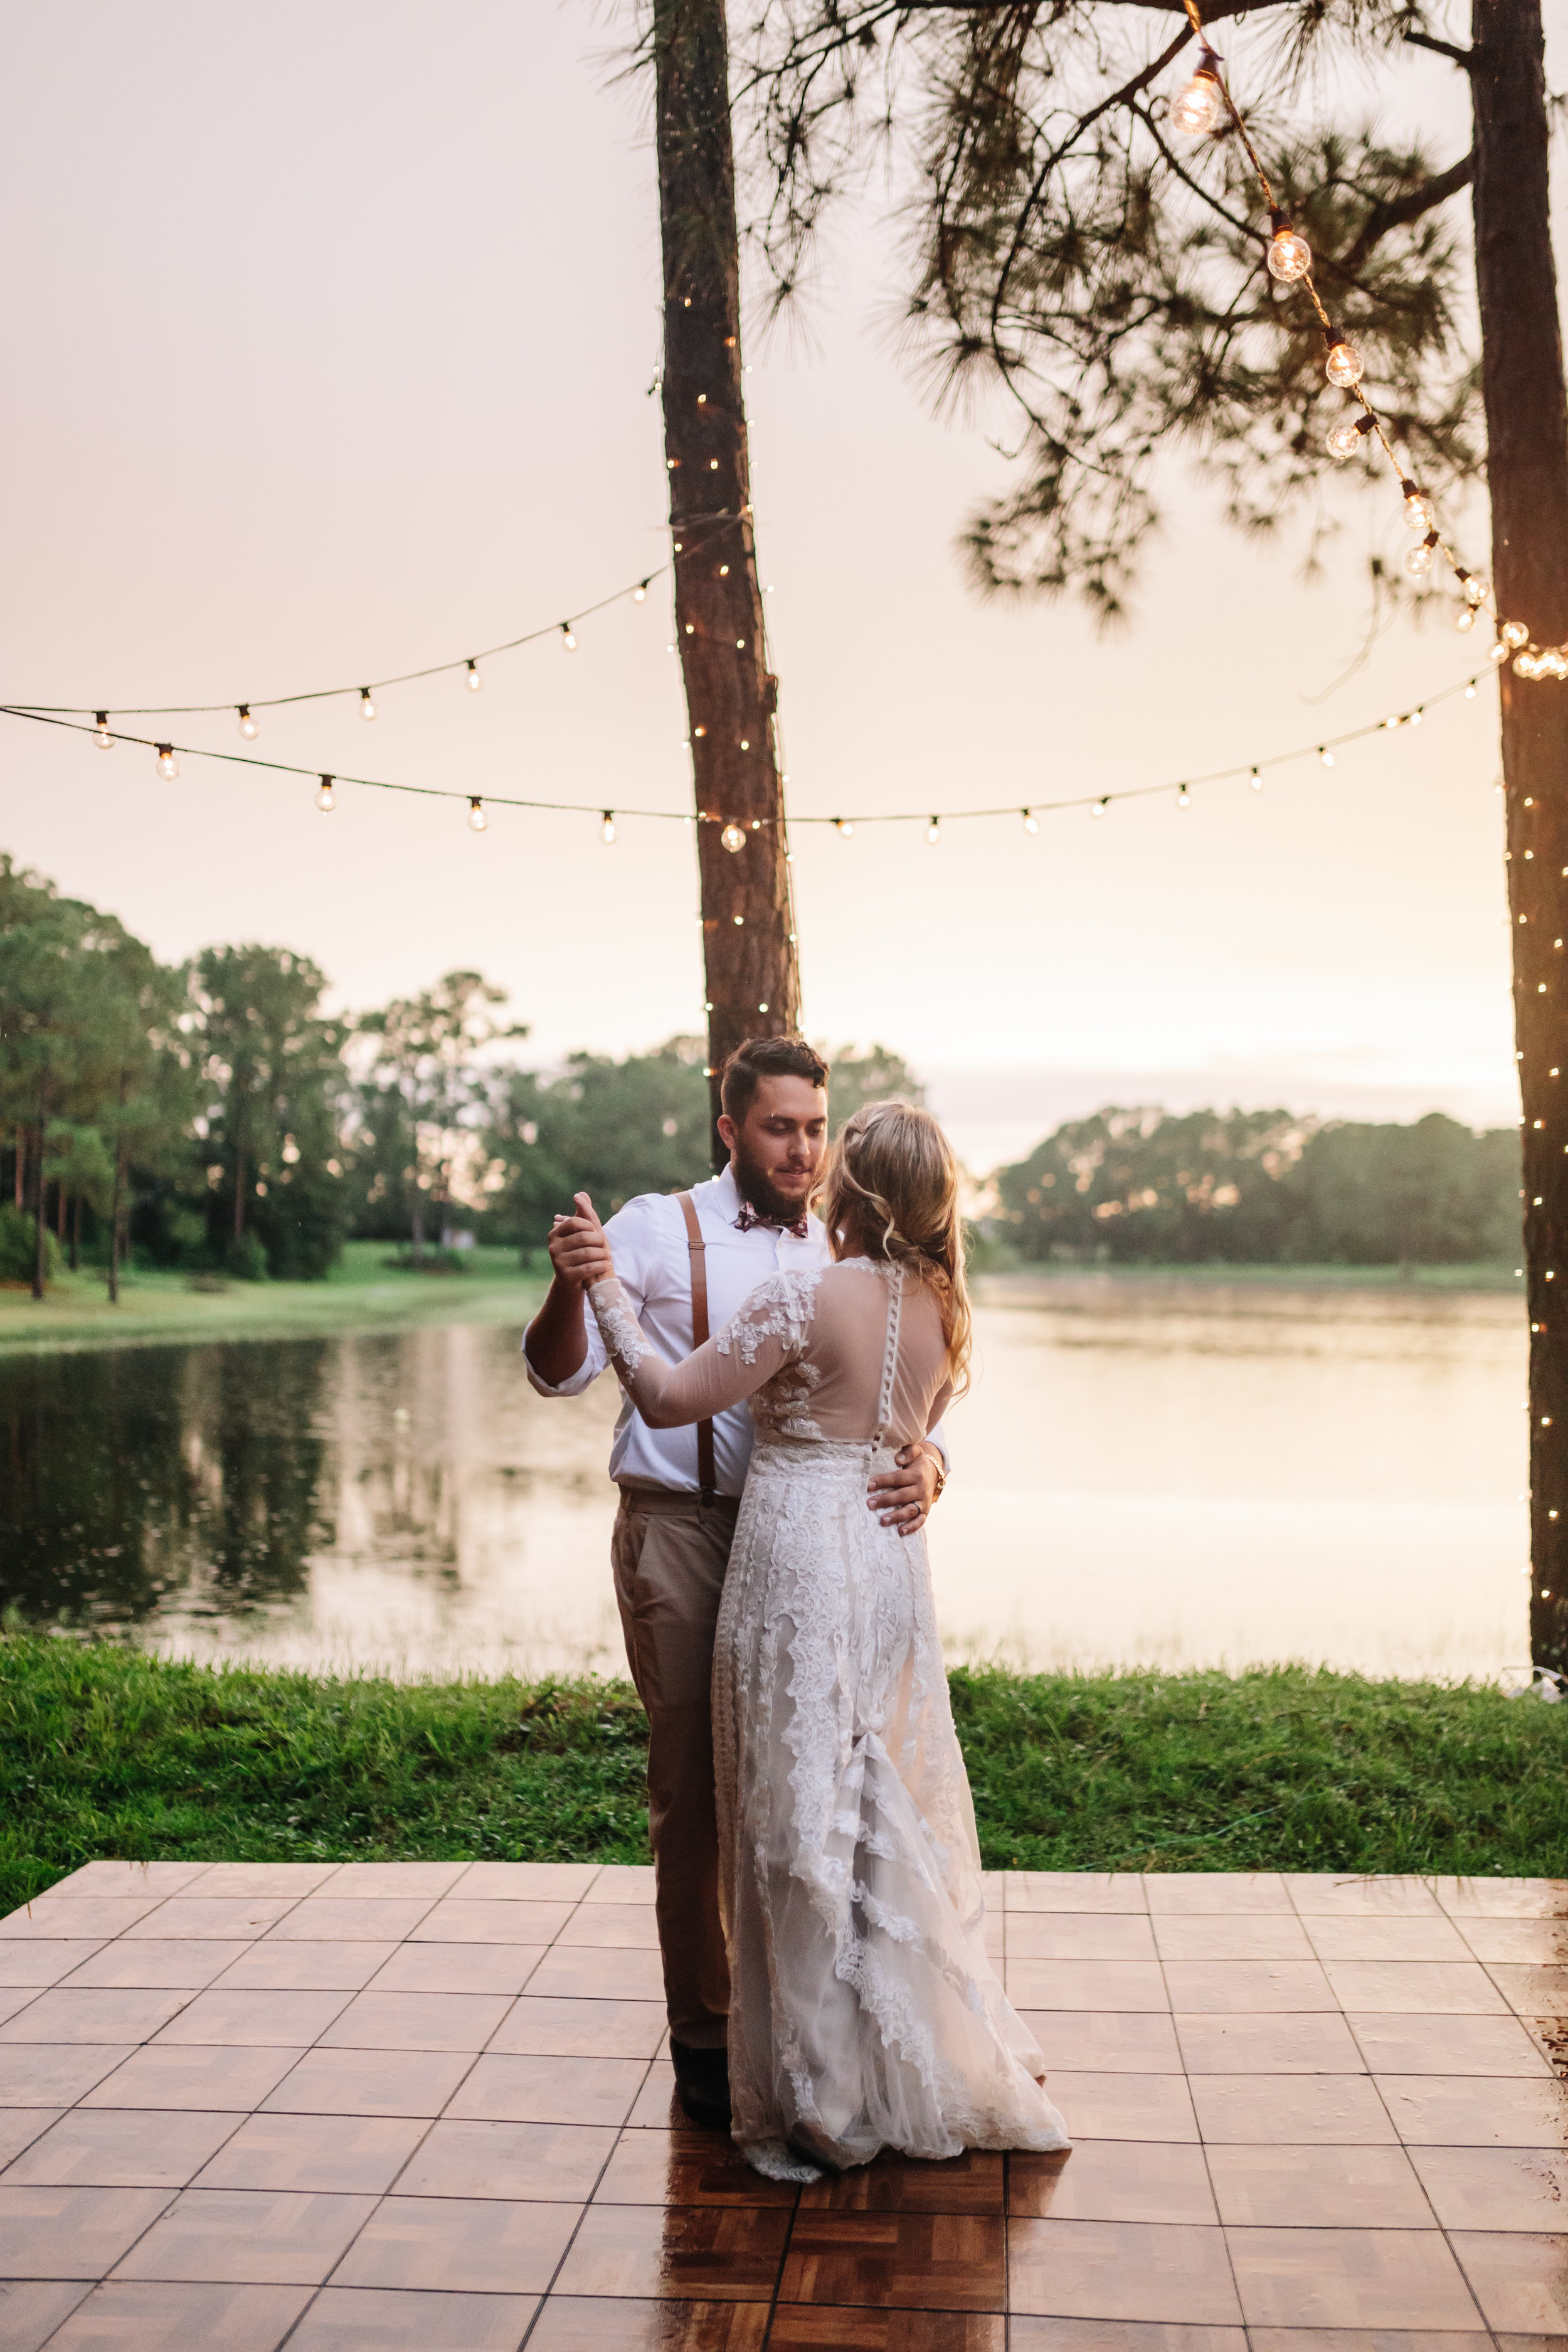 2018.07.28 Brooke and Korey Arnold Winter Springs Wedding FINALS-695.jpg